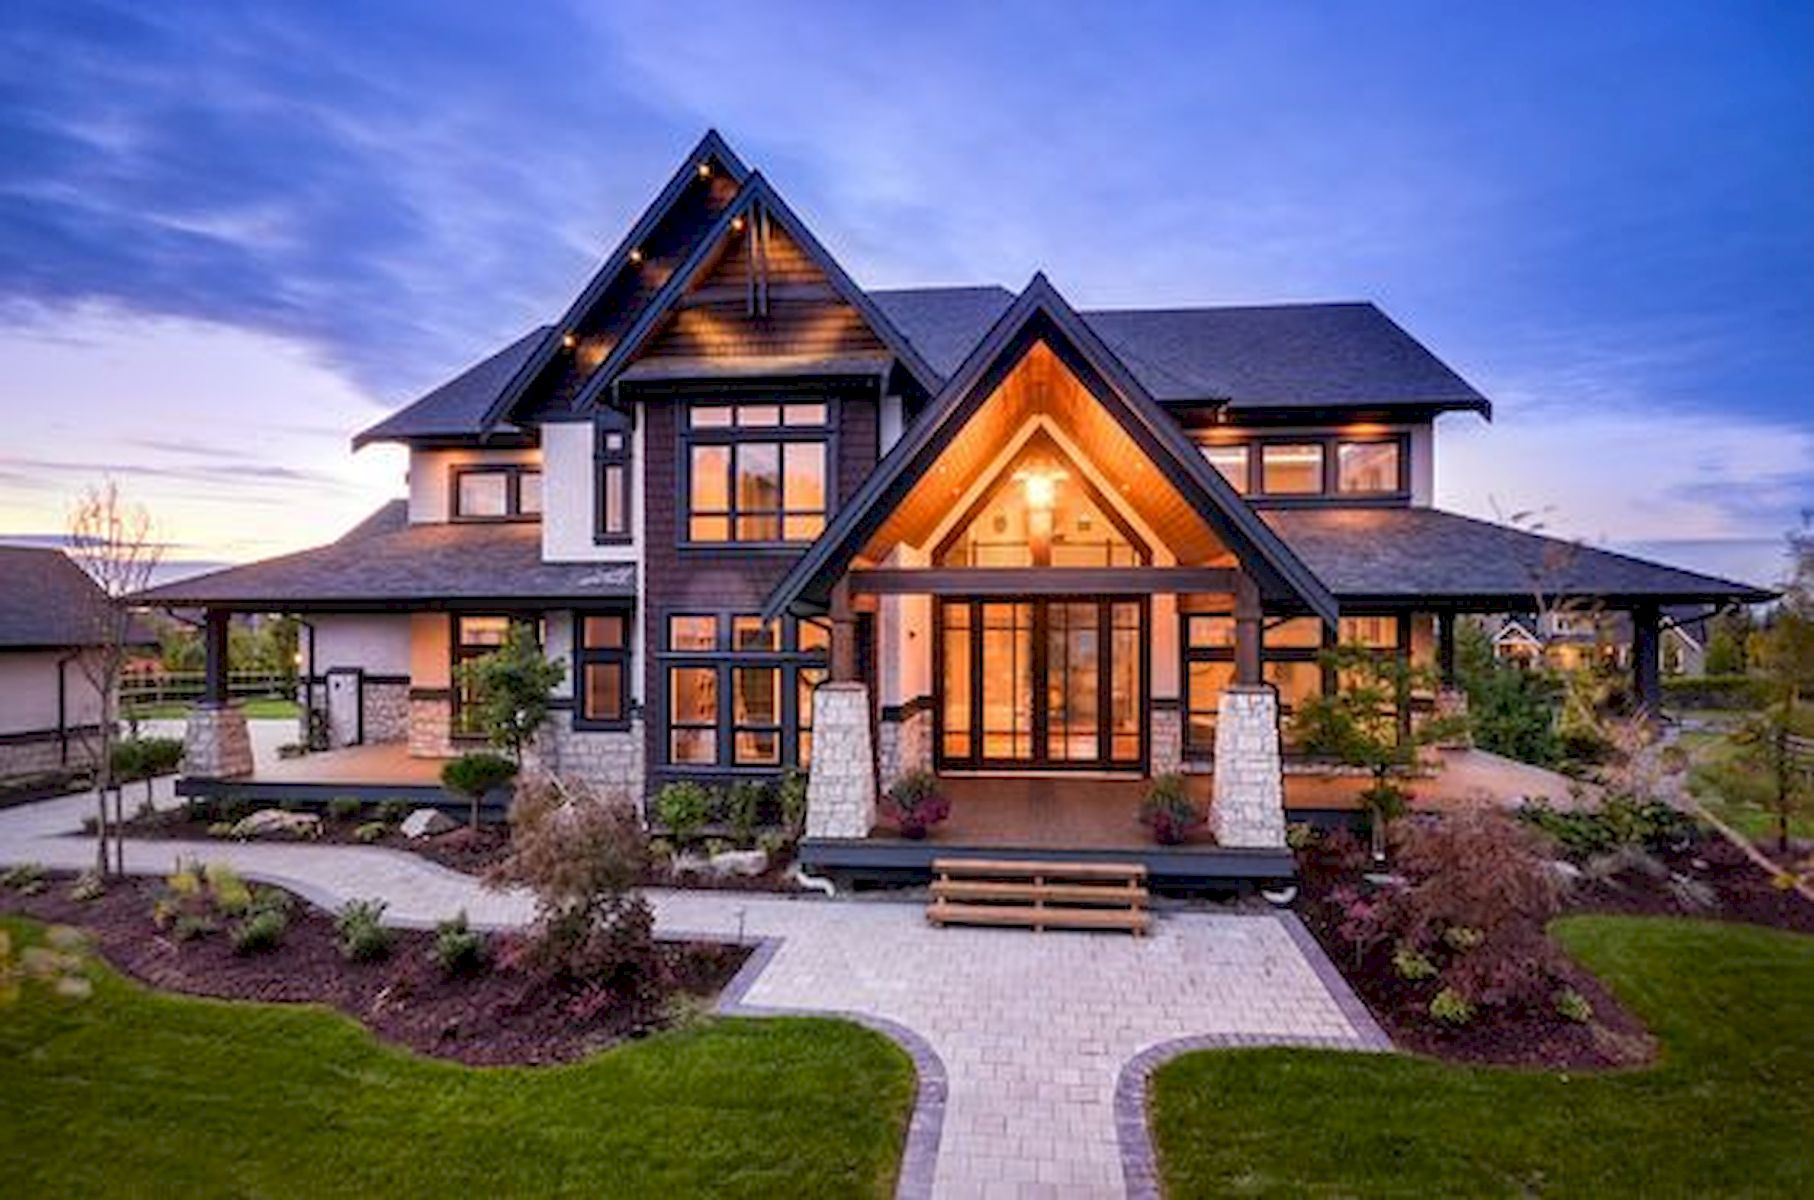 60 Most Popular Modern Dream House Exterior Design Ideas (41)